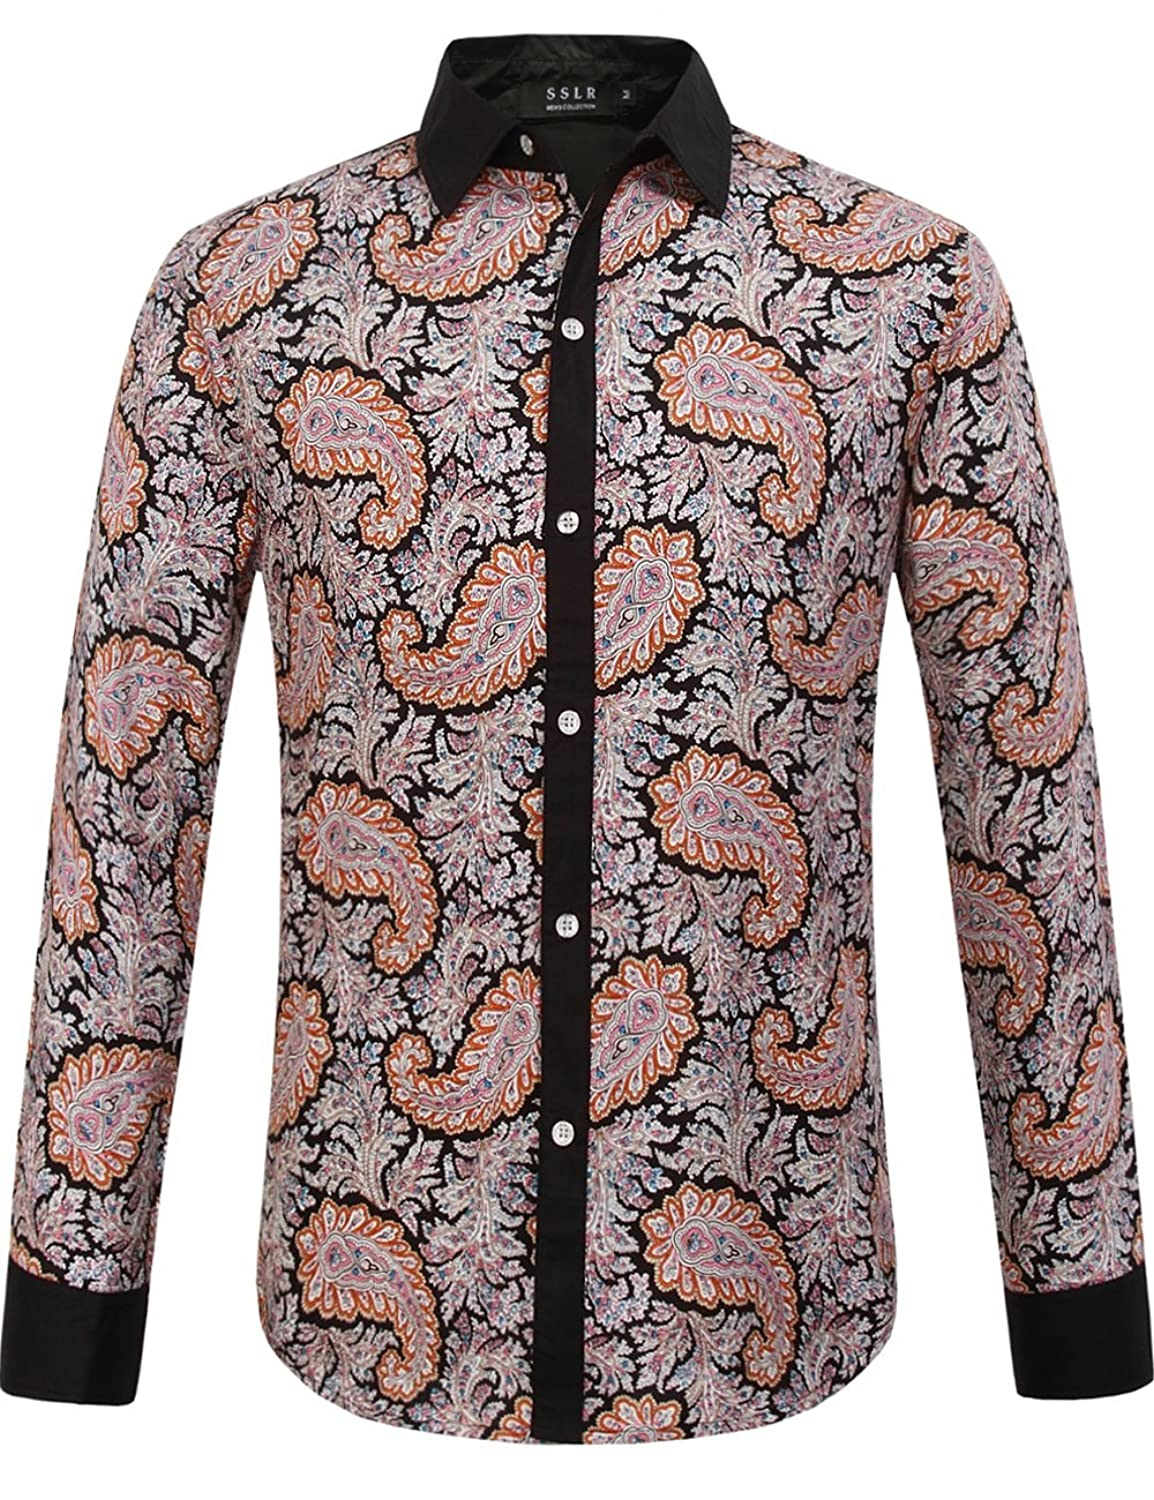 1960s Style Men's Clothing, 70s Men's Fashion Paisley Scatter Print Long Sleeve Shirt $25.00 AT vintagedancer.com